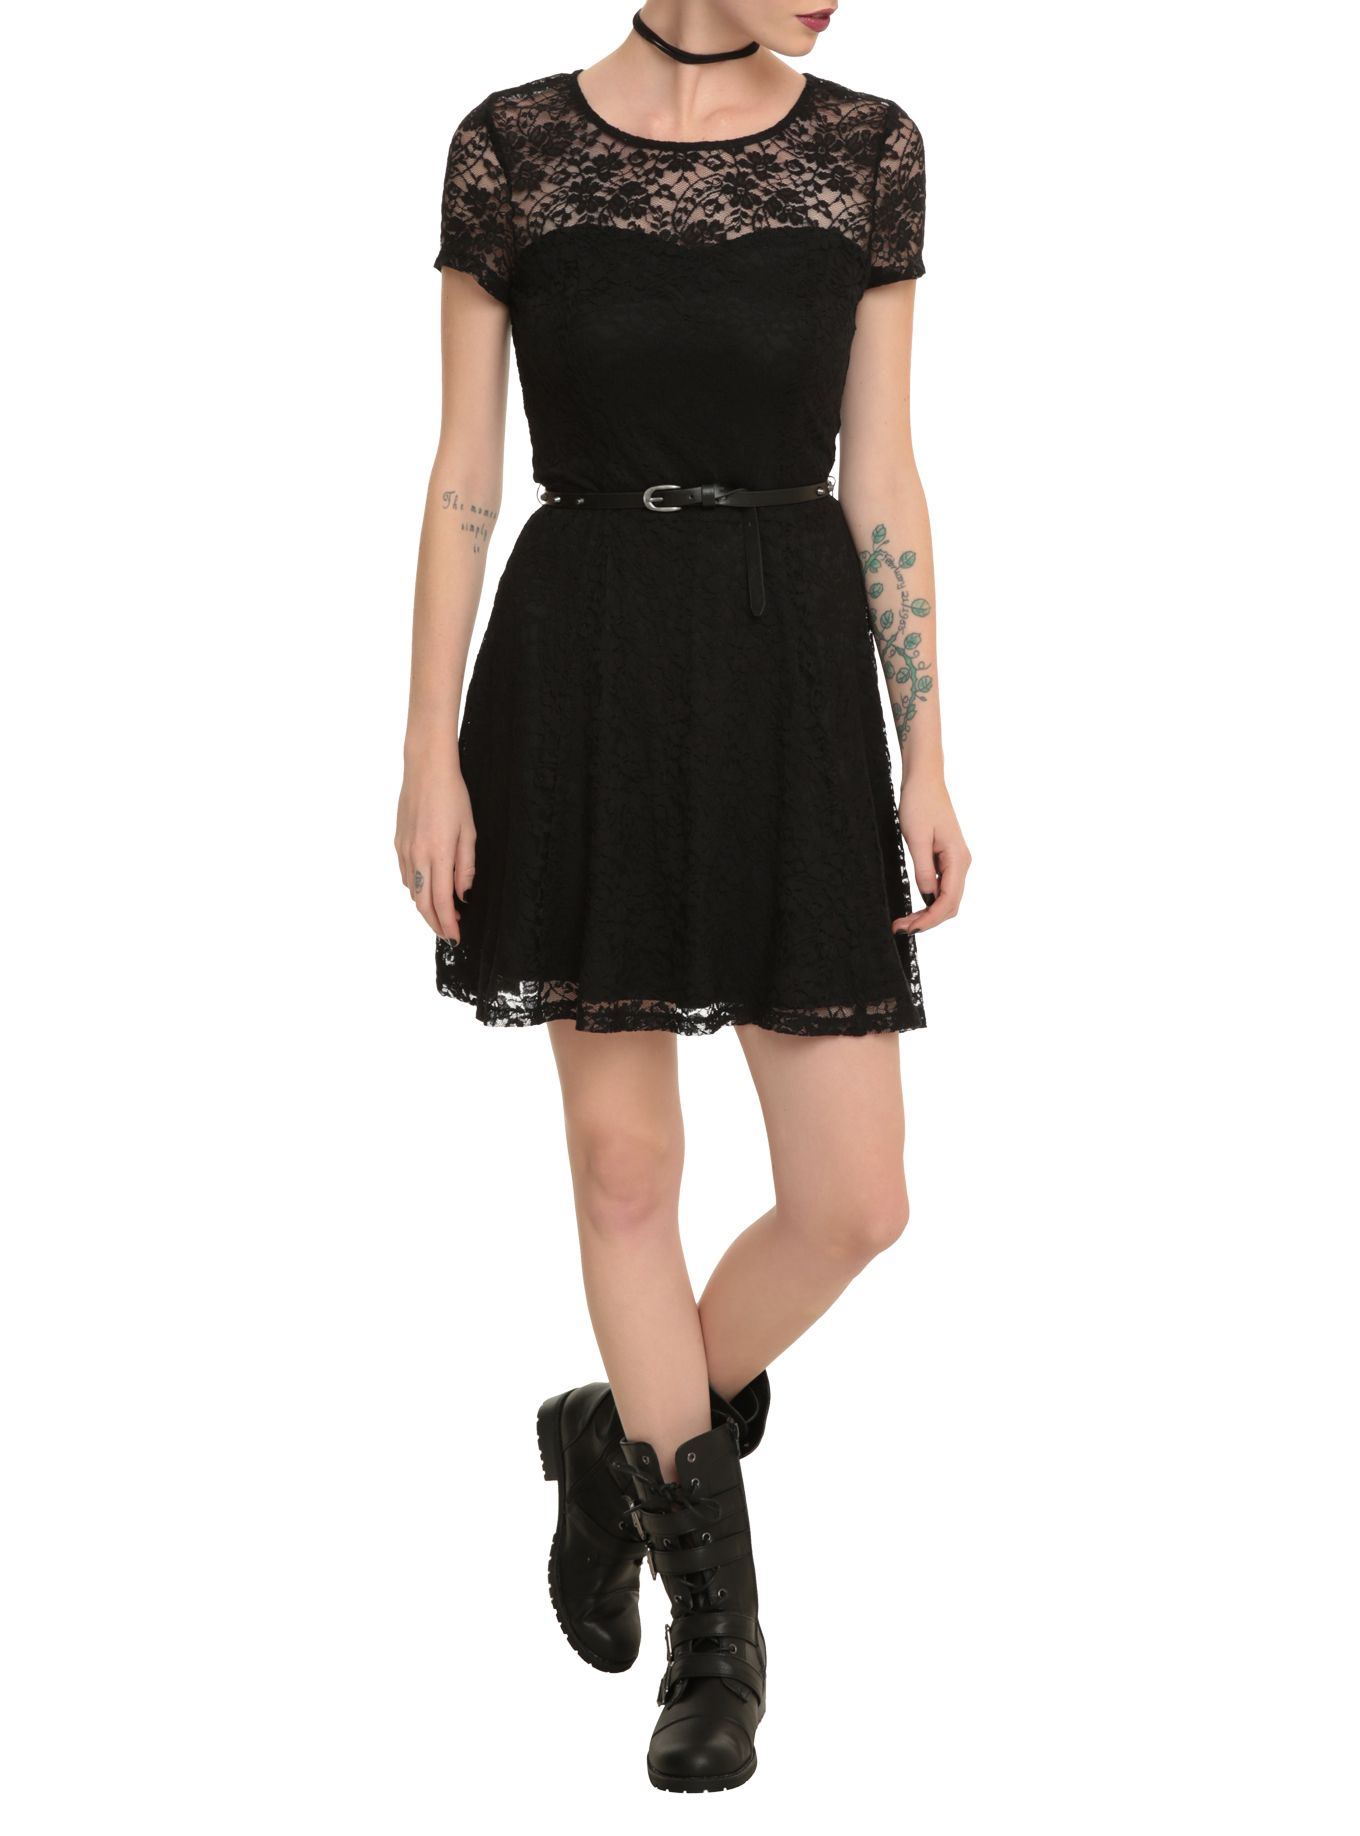 Black lace belted dress black laces hot topic and stockings